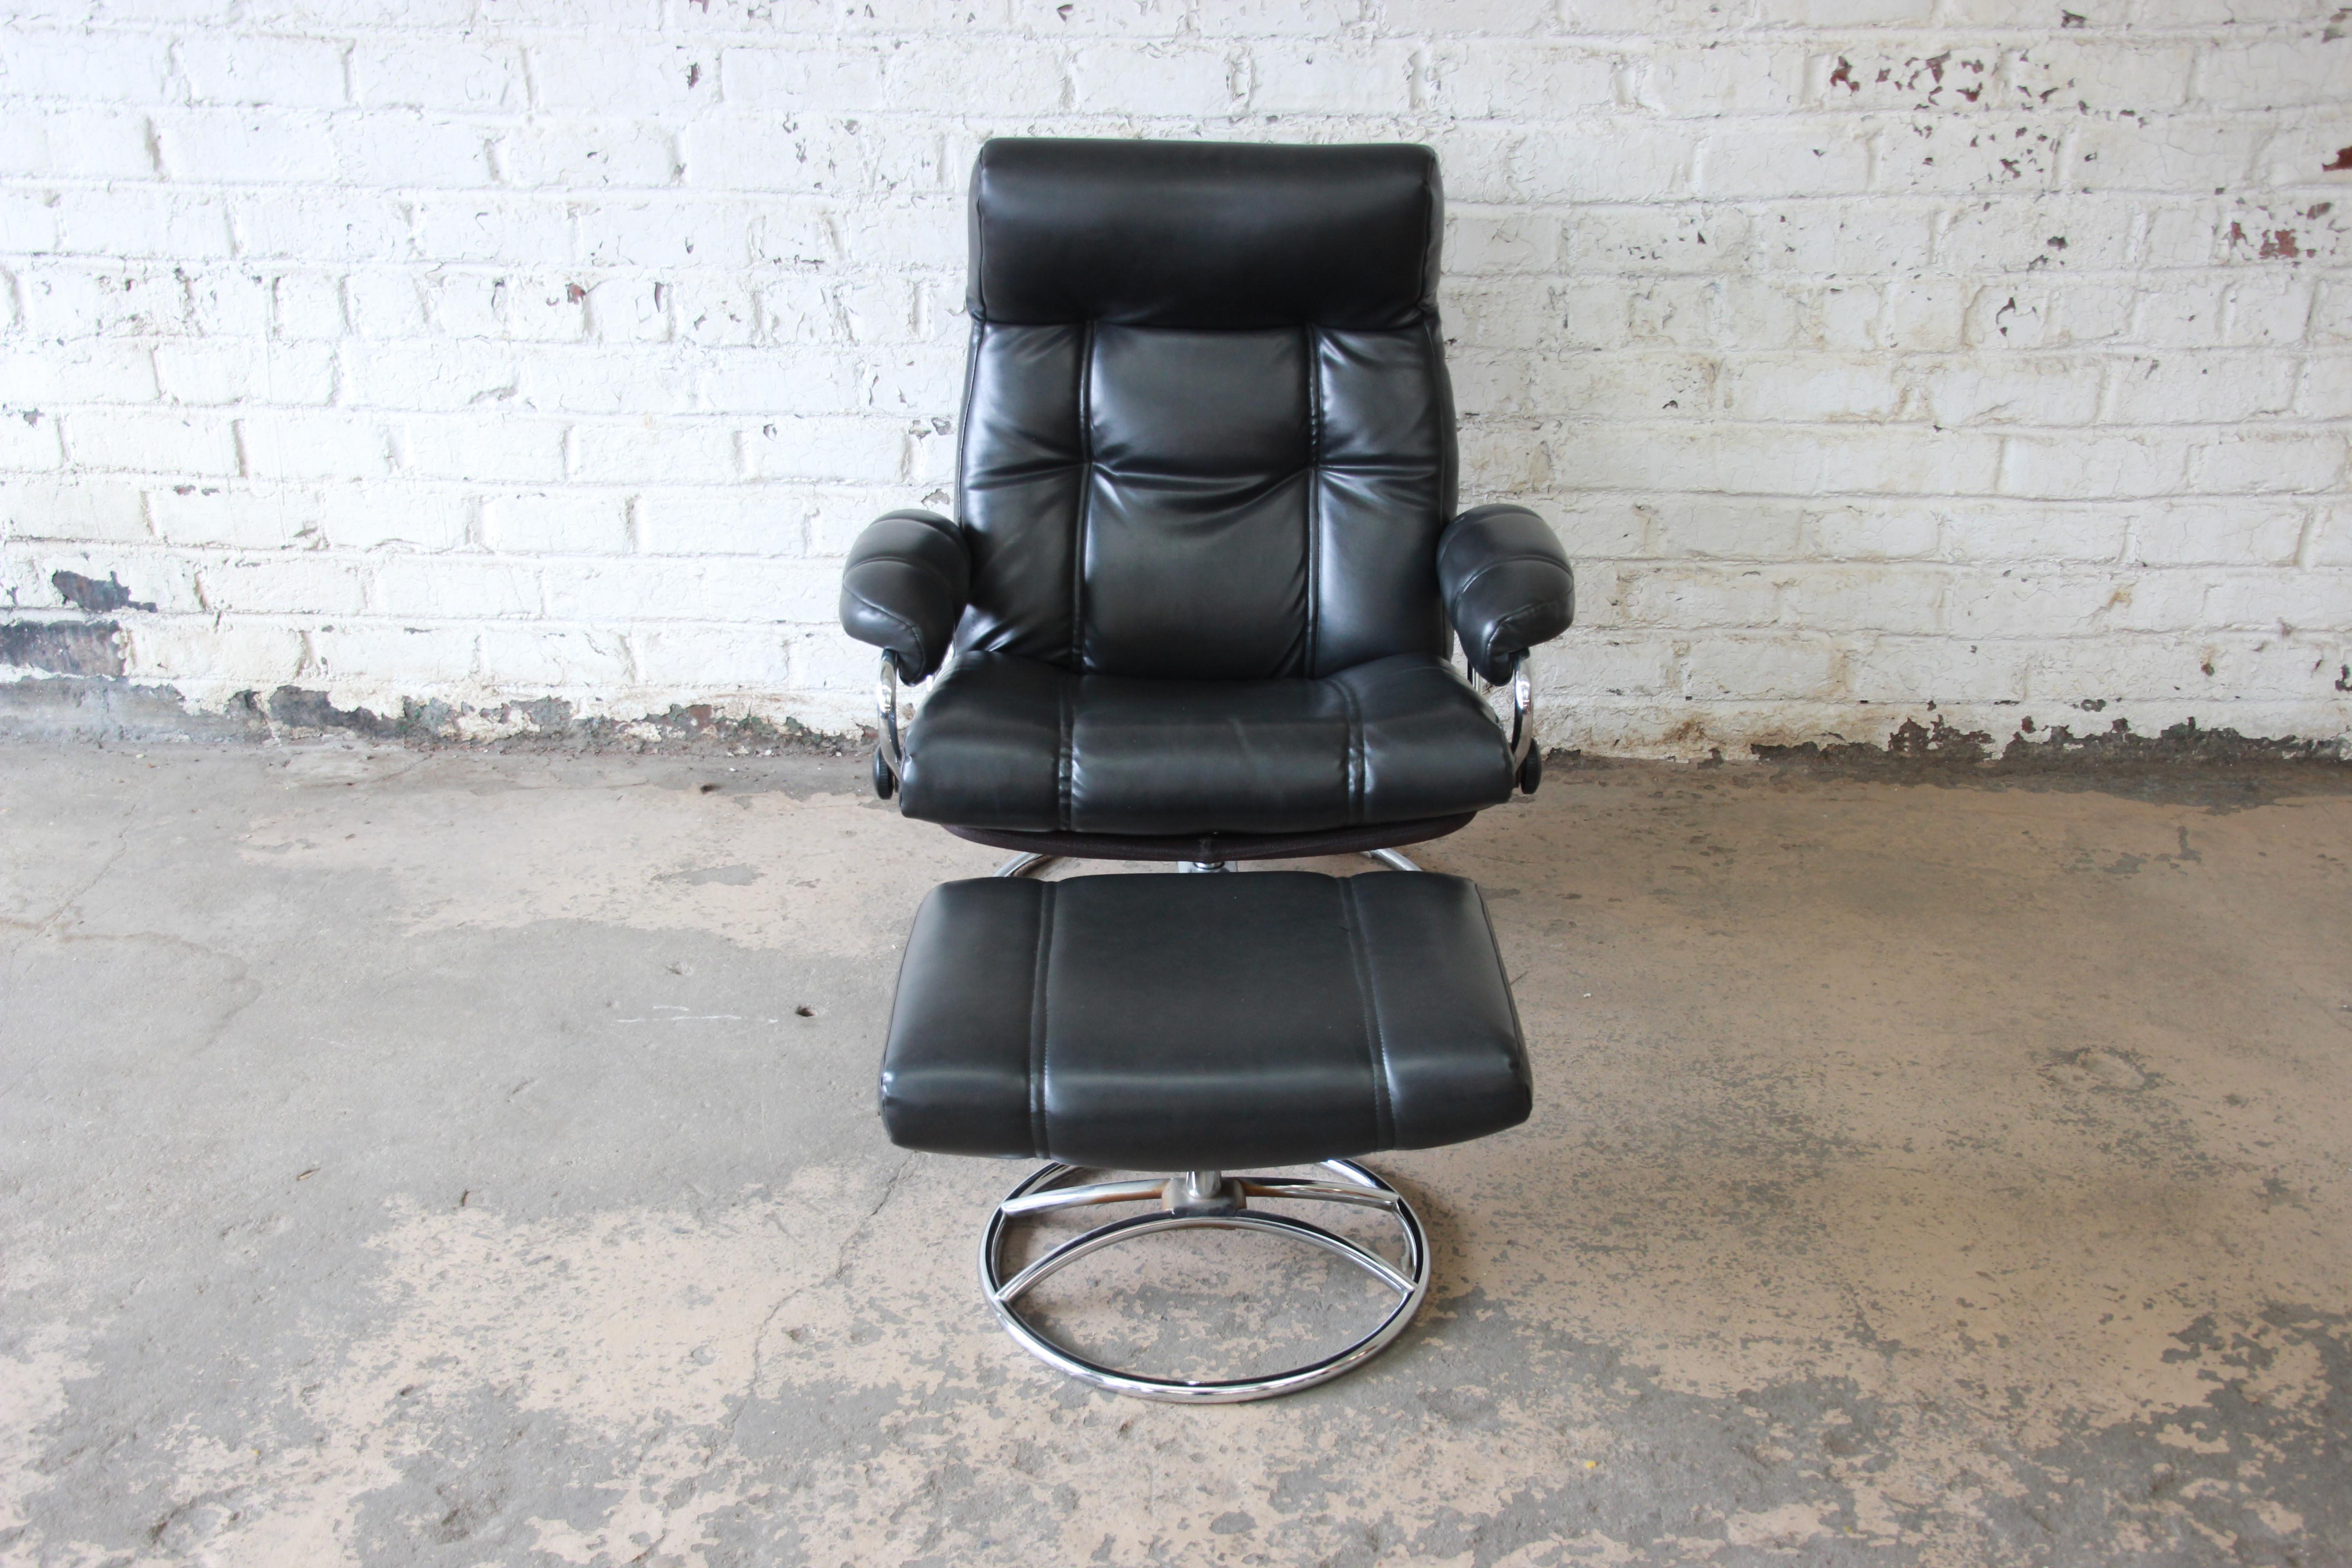 Vintage Black Ekornes Stressless Chair And Ottoman   Image 3 Of 11